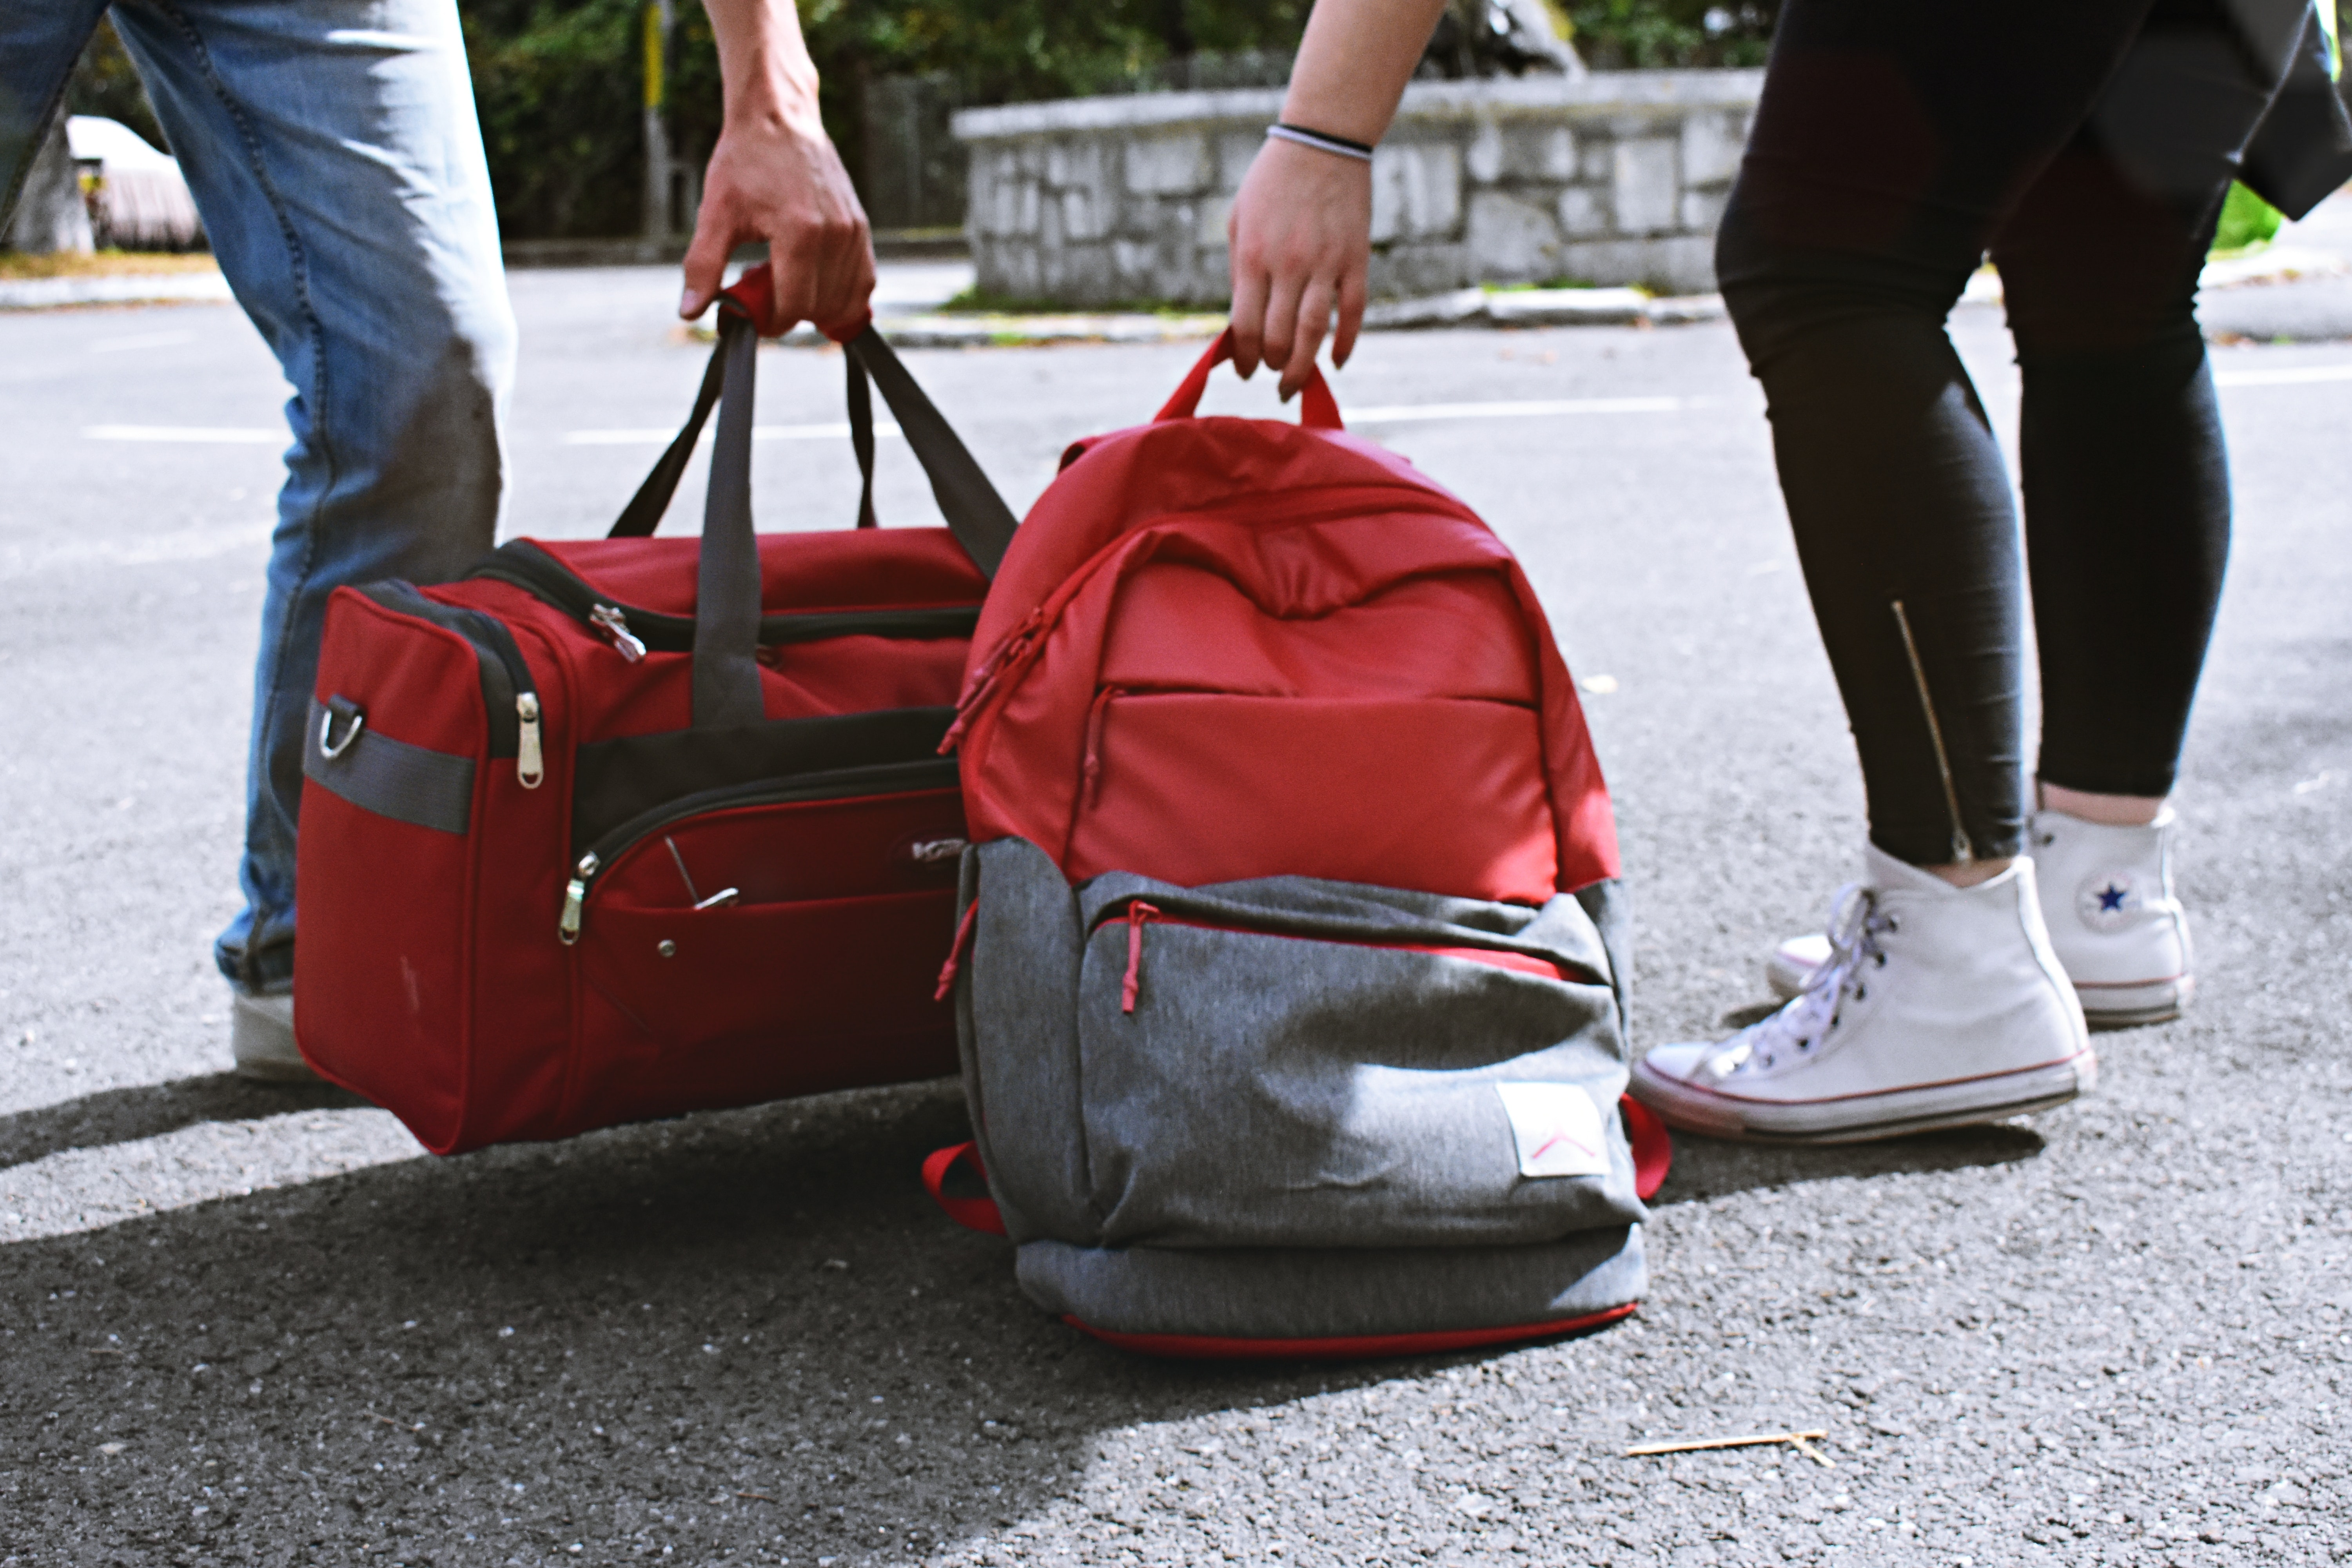 Pack essential items for your preschooler in your luggage